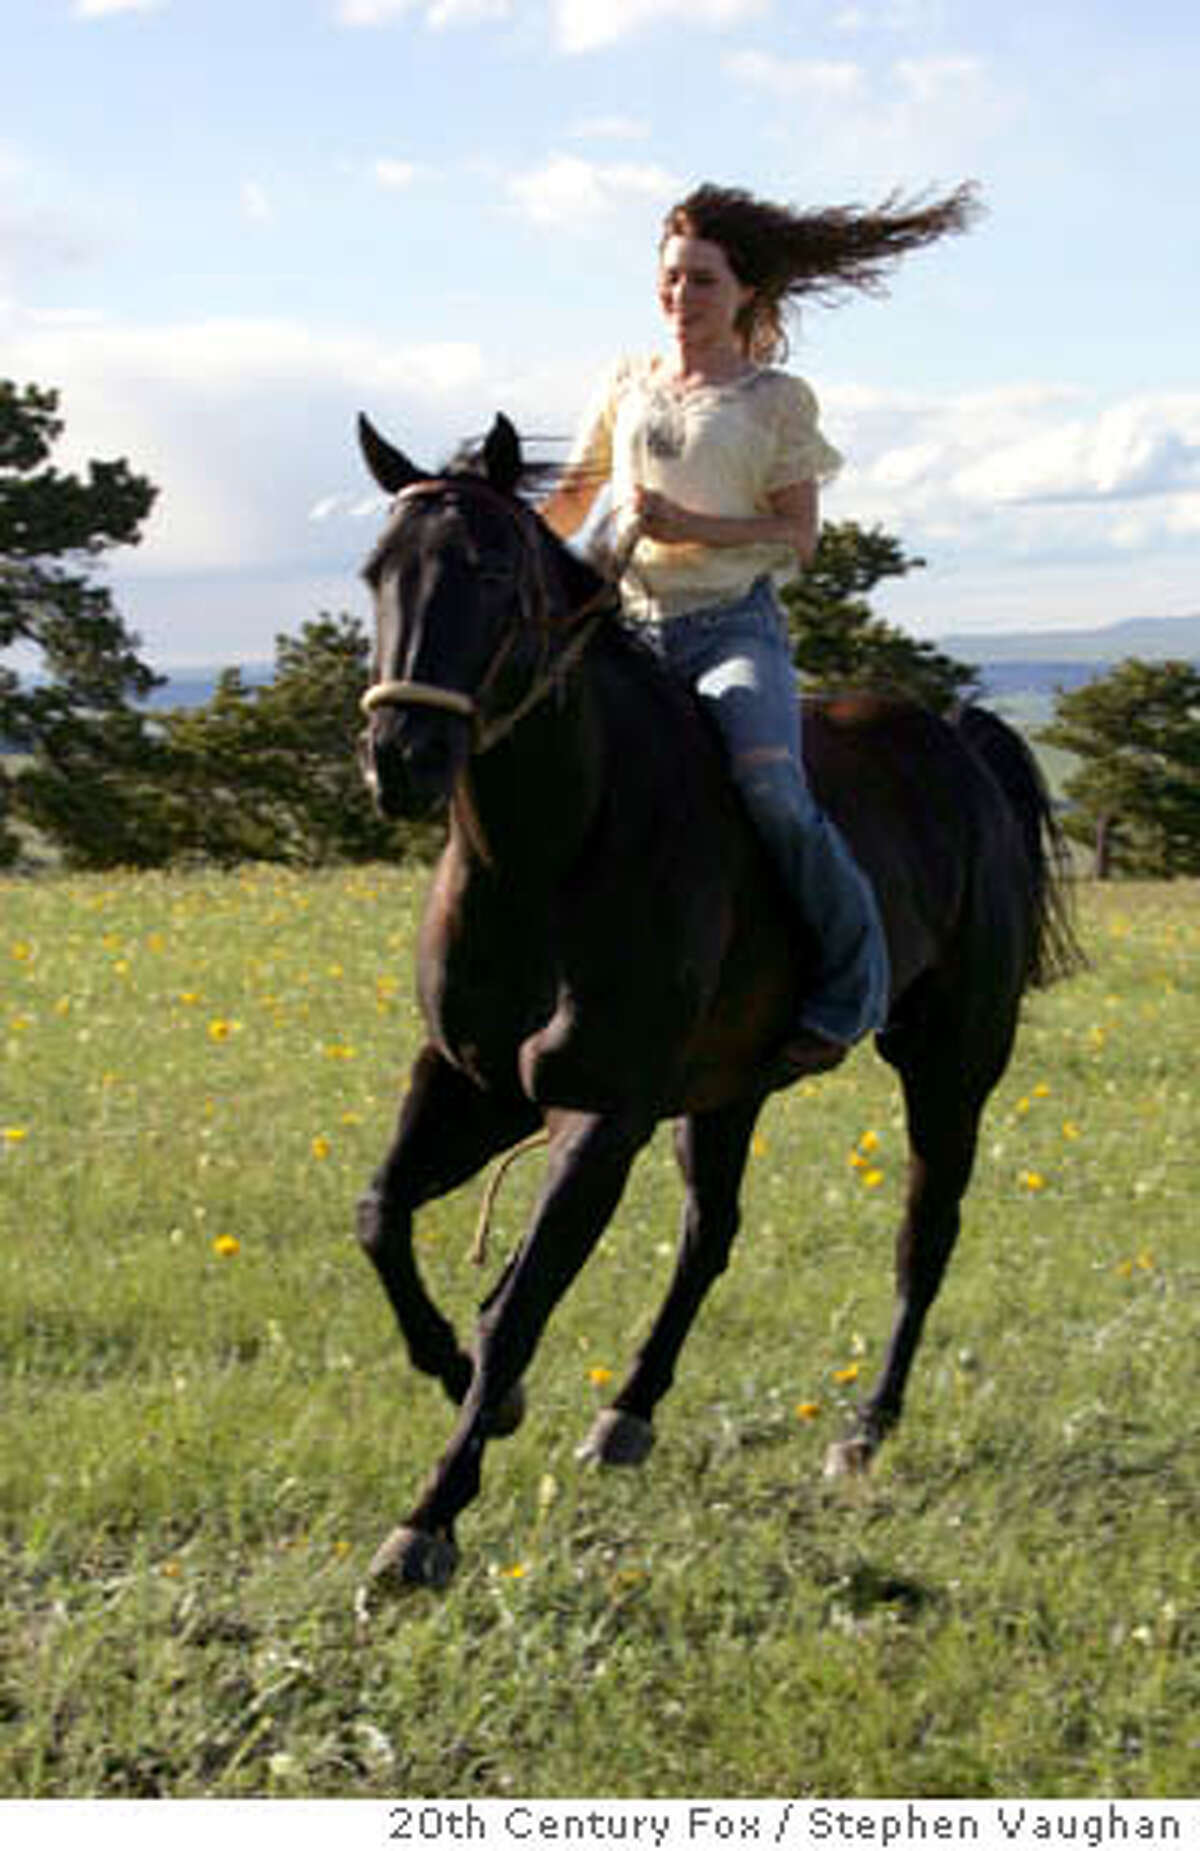 Katy McLaughlin (Alison Lohman) rides her mustang, the title character of